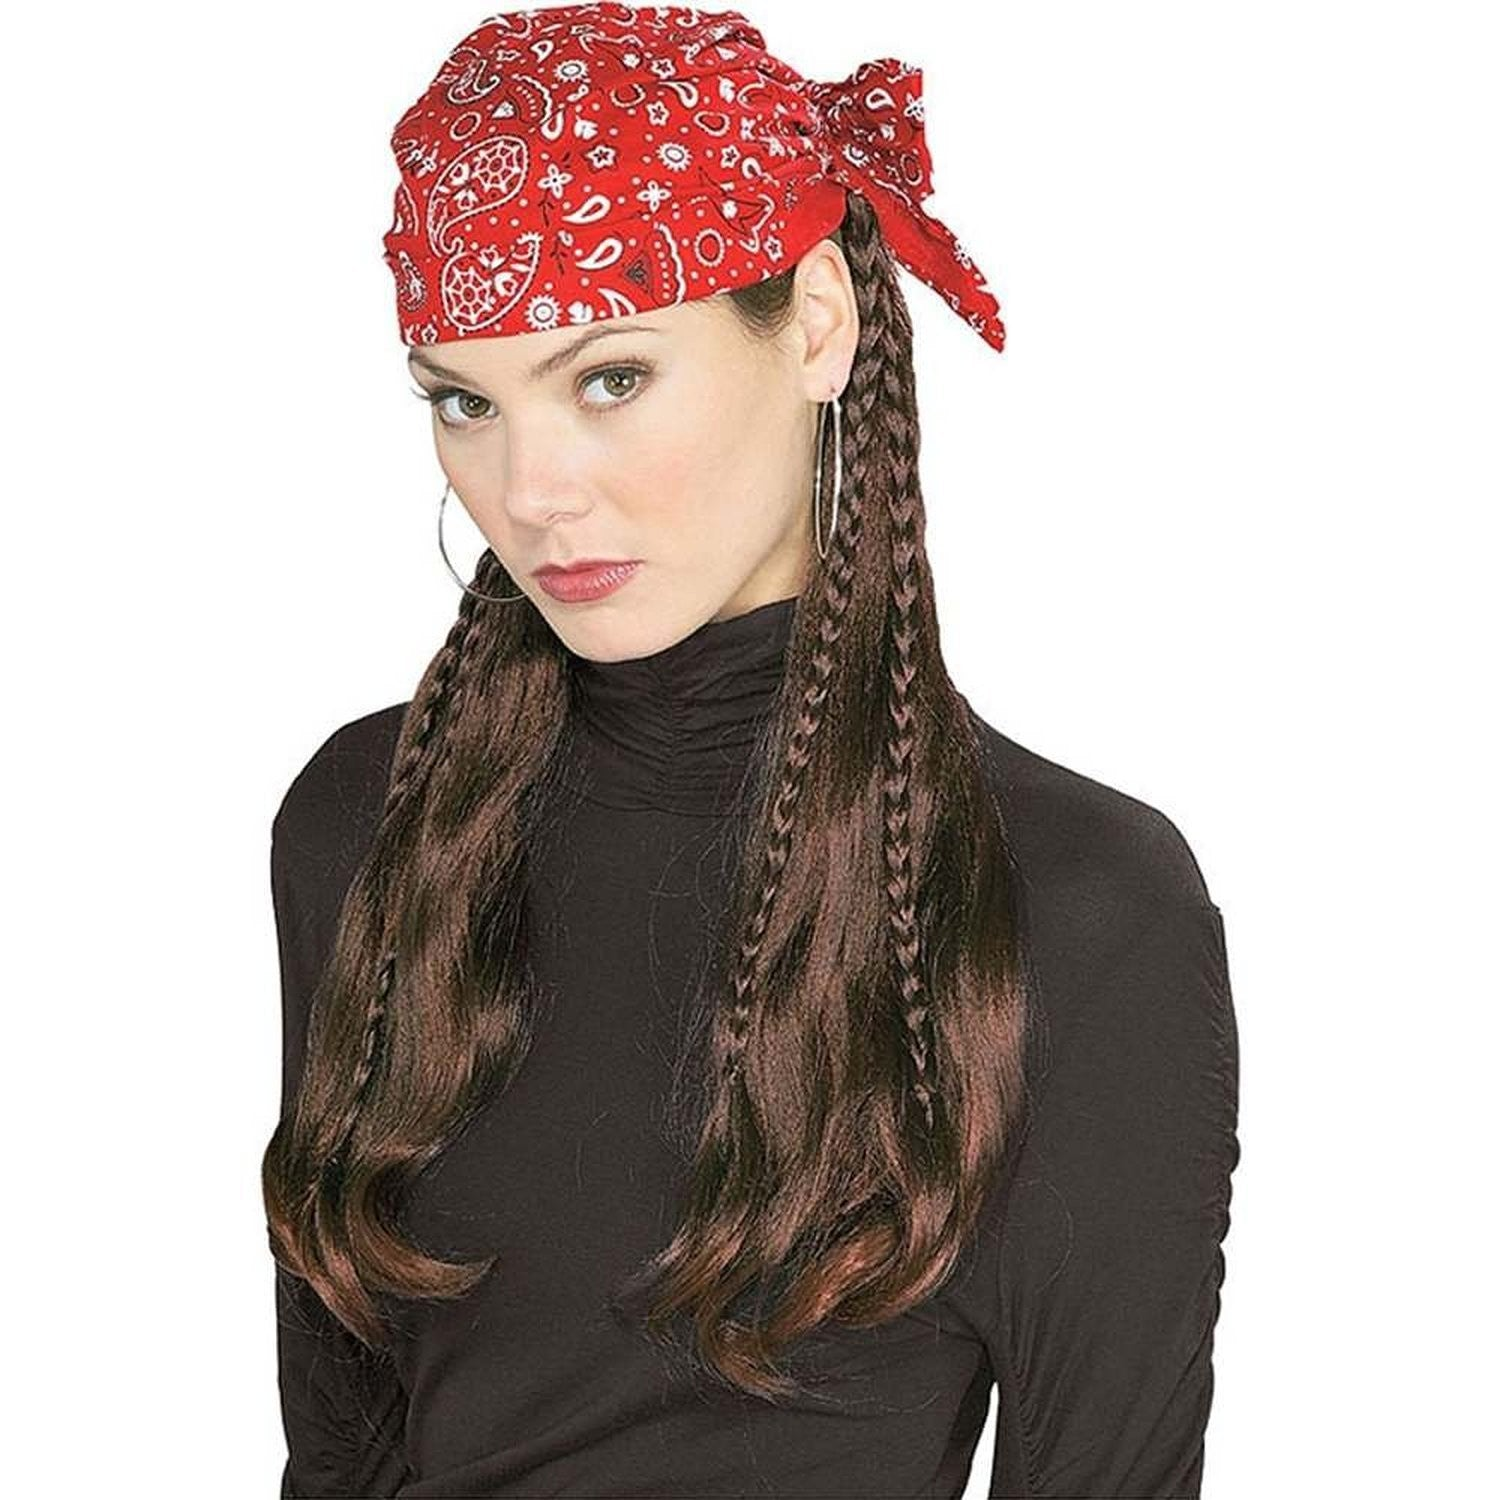 Pirate Wig with Bandanna - Various Colors